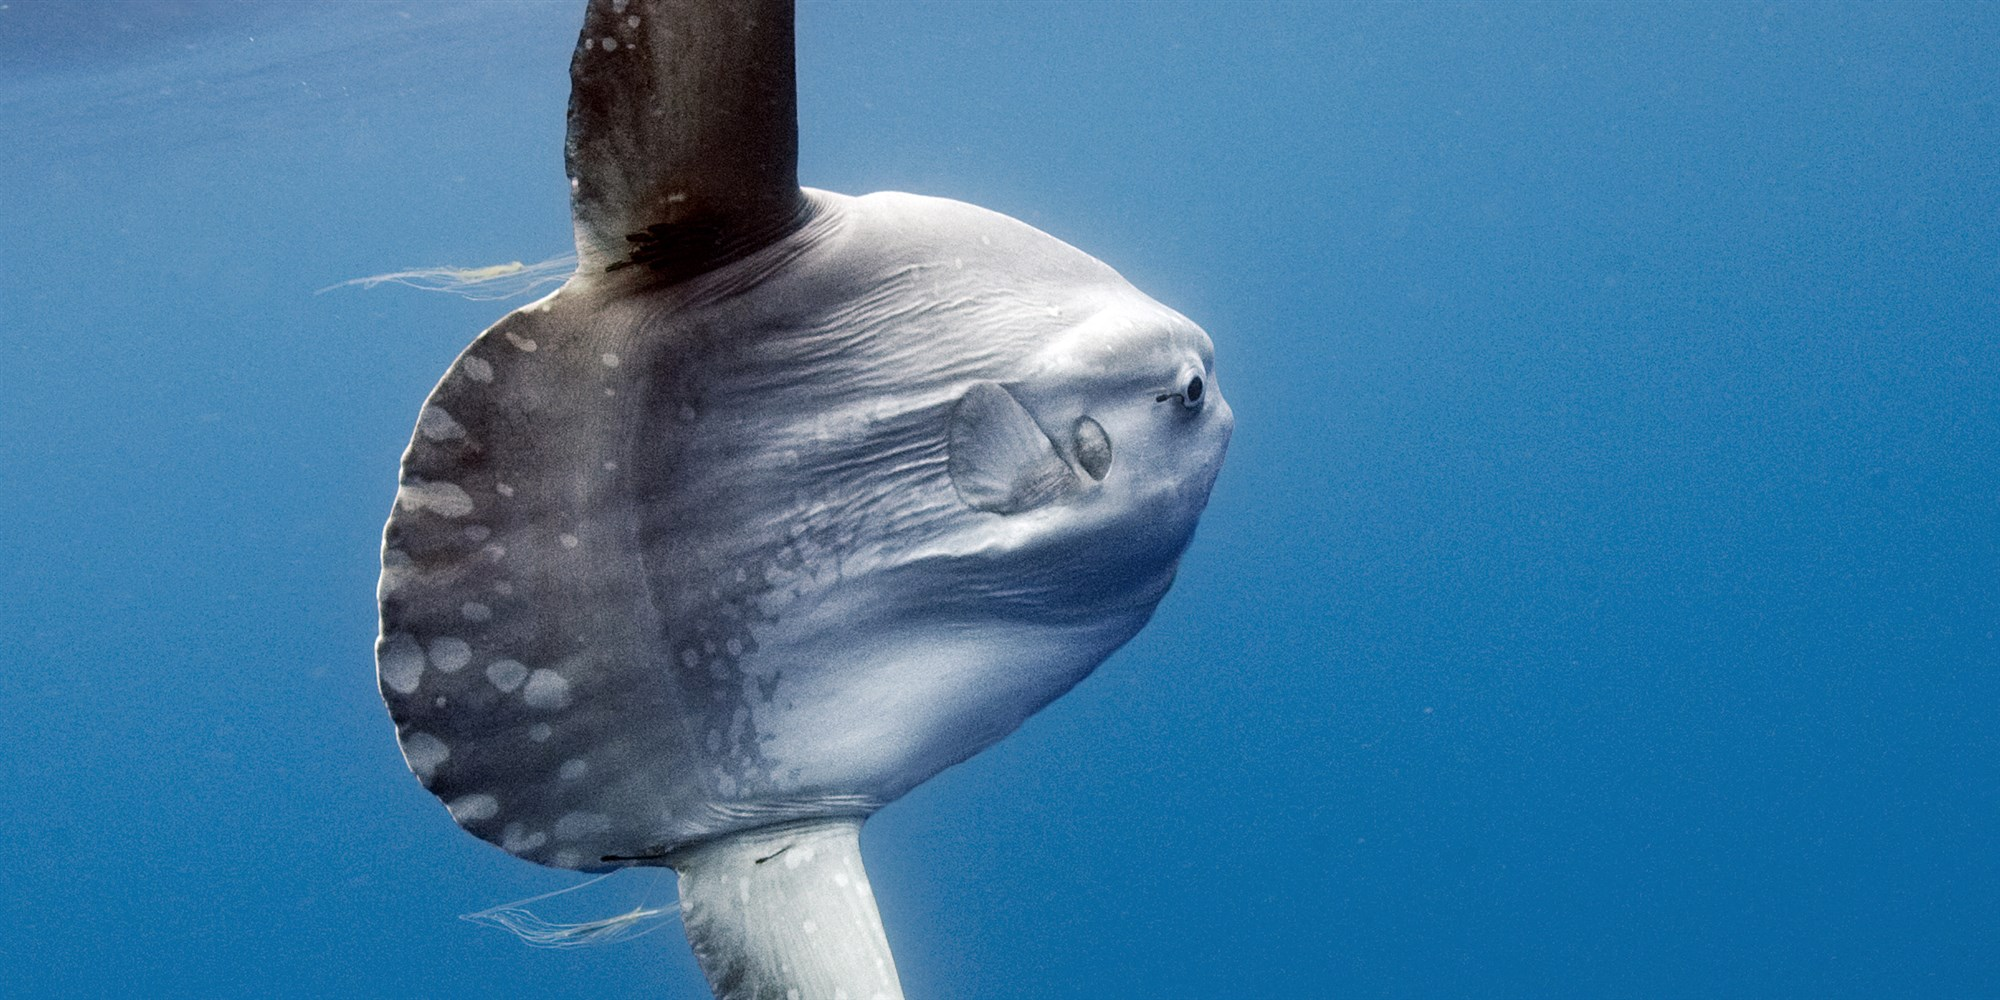 Giant-sunfish-sighting-prompts-911-calls;-officials-say,-'Please-stop'